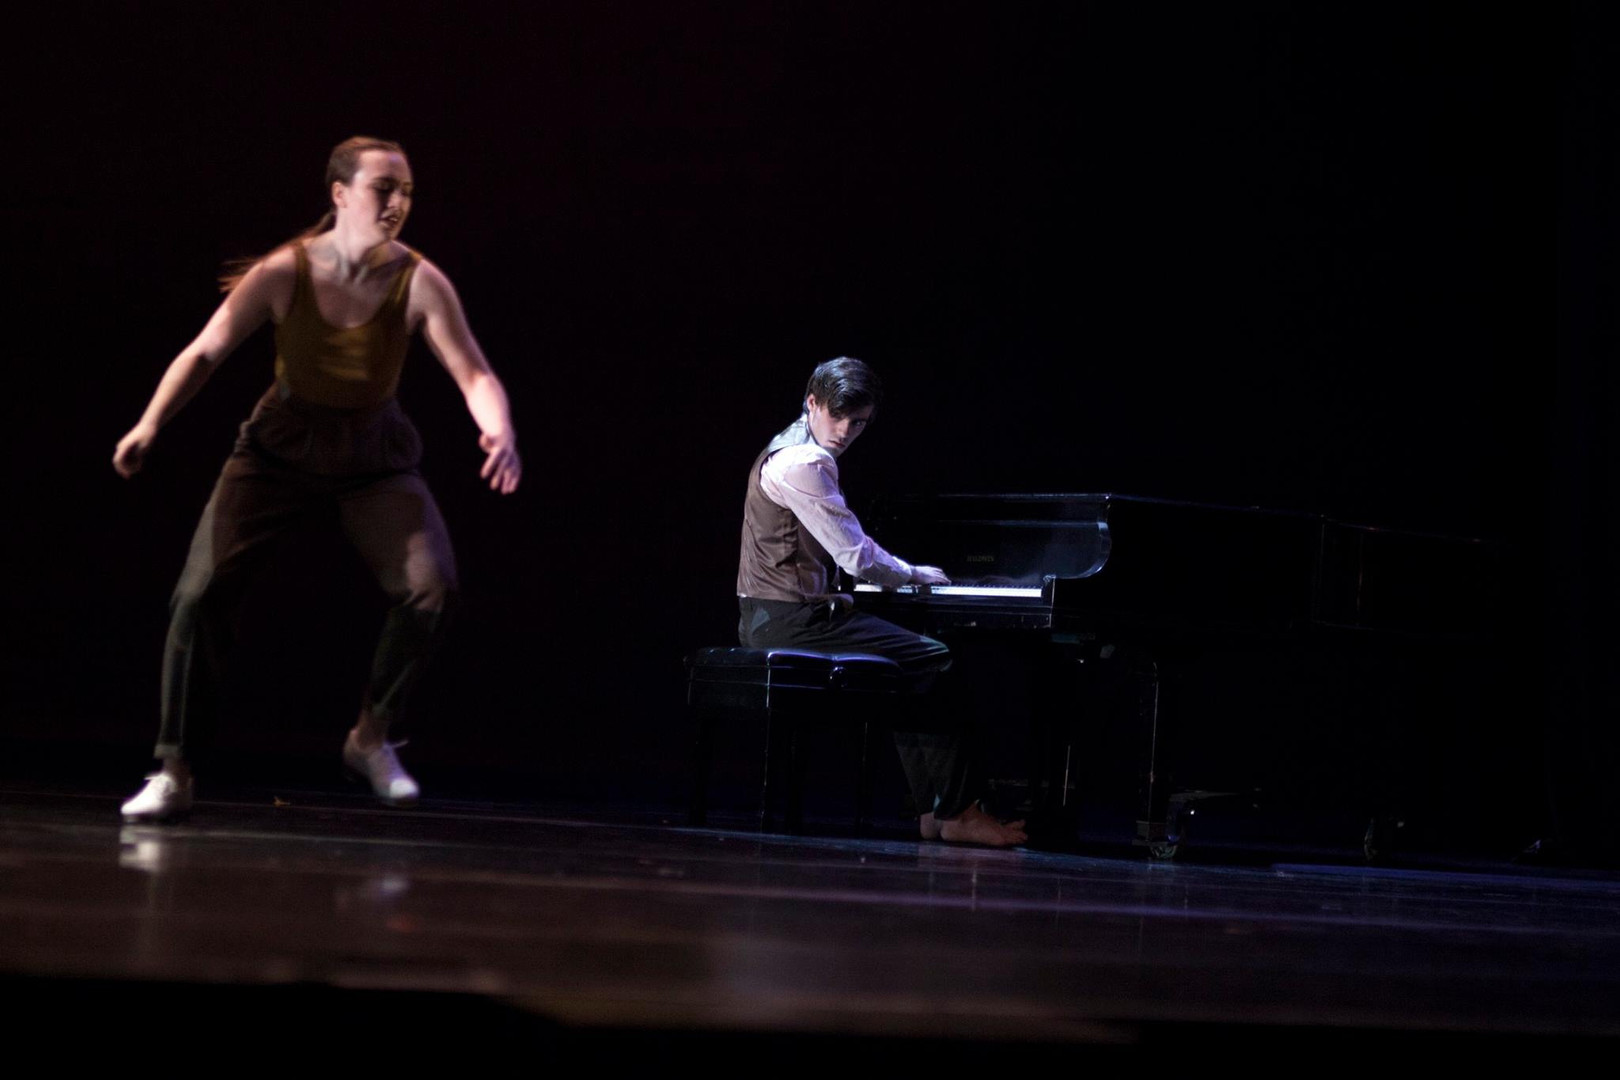 Composer/Choreographer/Performer in Inside/Outside (chosen to be a part of the 89th December Dance Concert) at Wayne State University